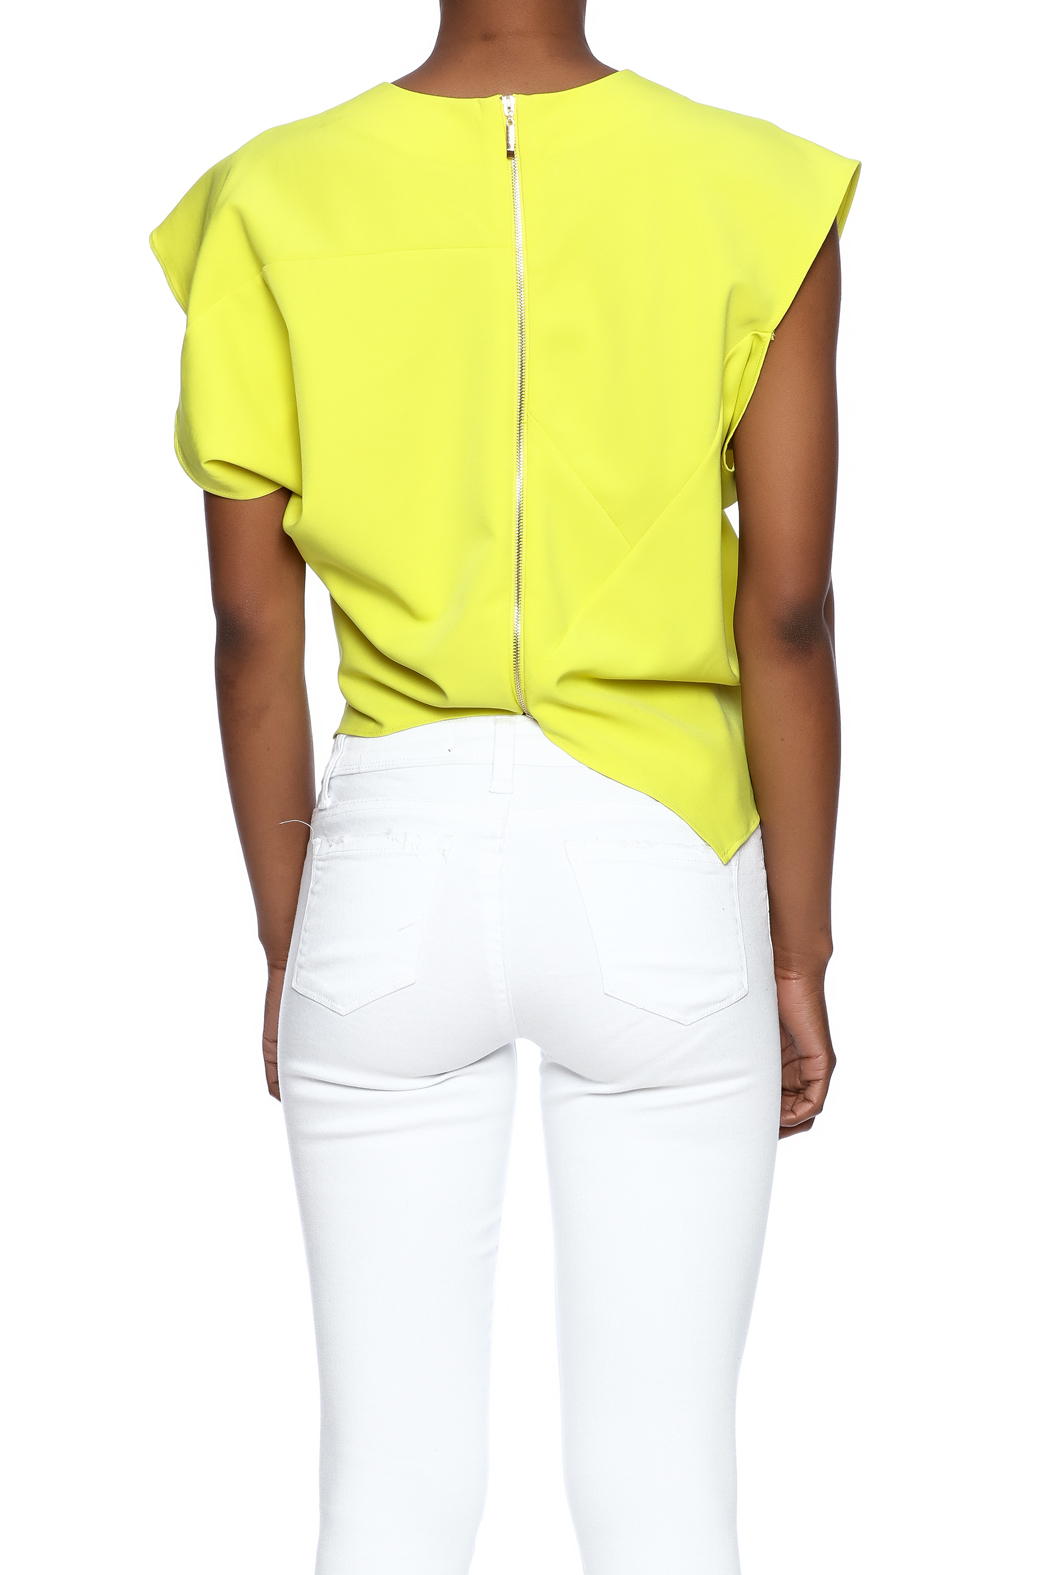 Gracia Yellow Origami Top from West Village by Pink ... - photo#3